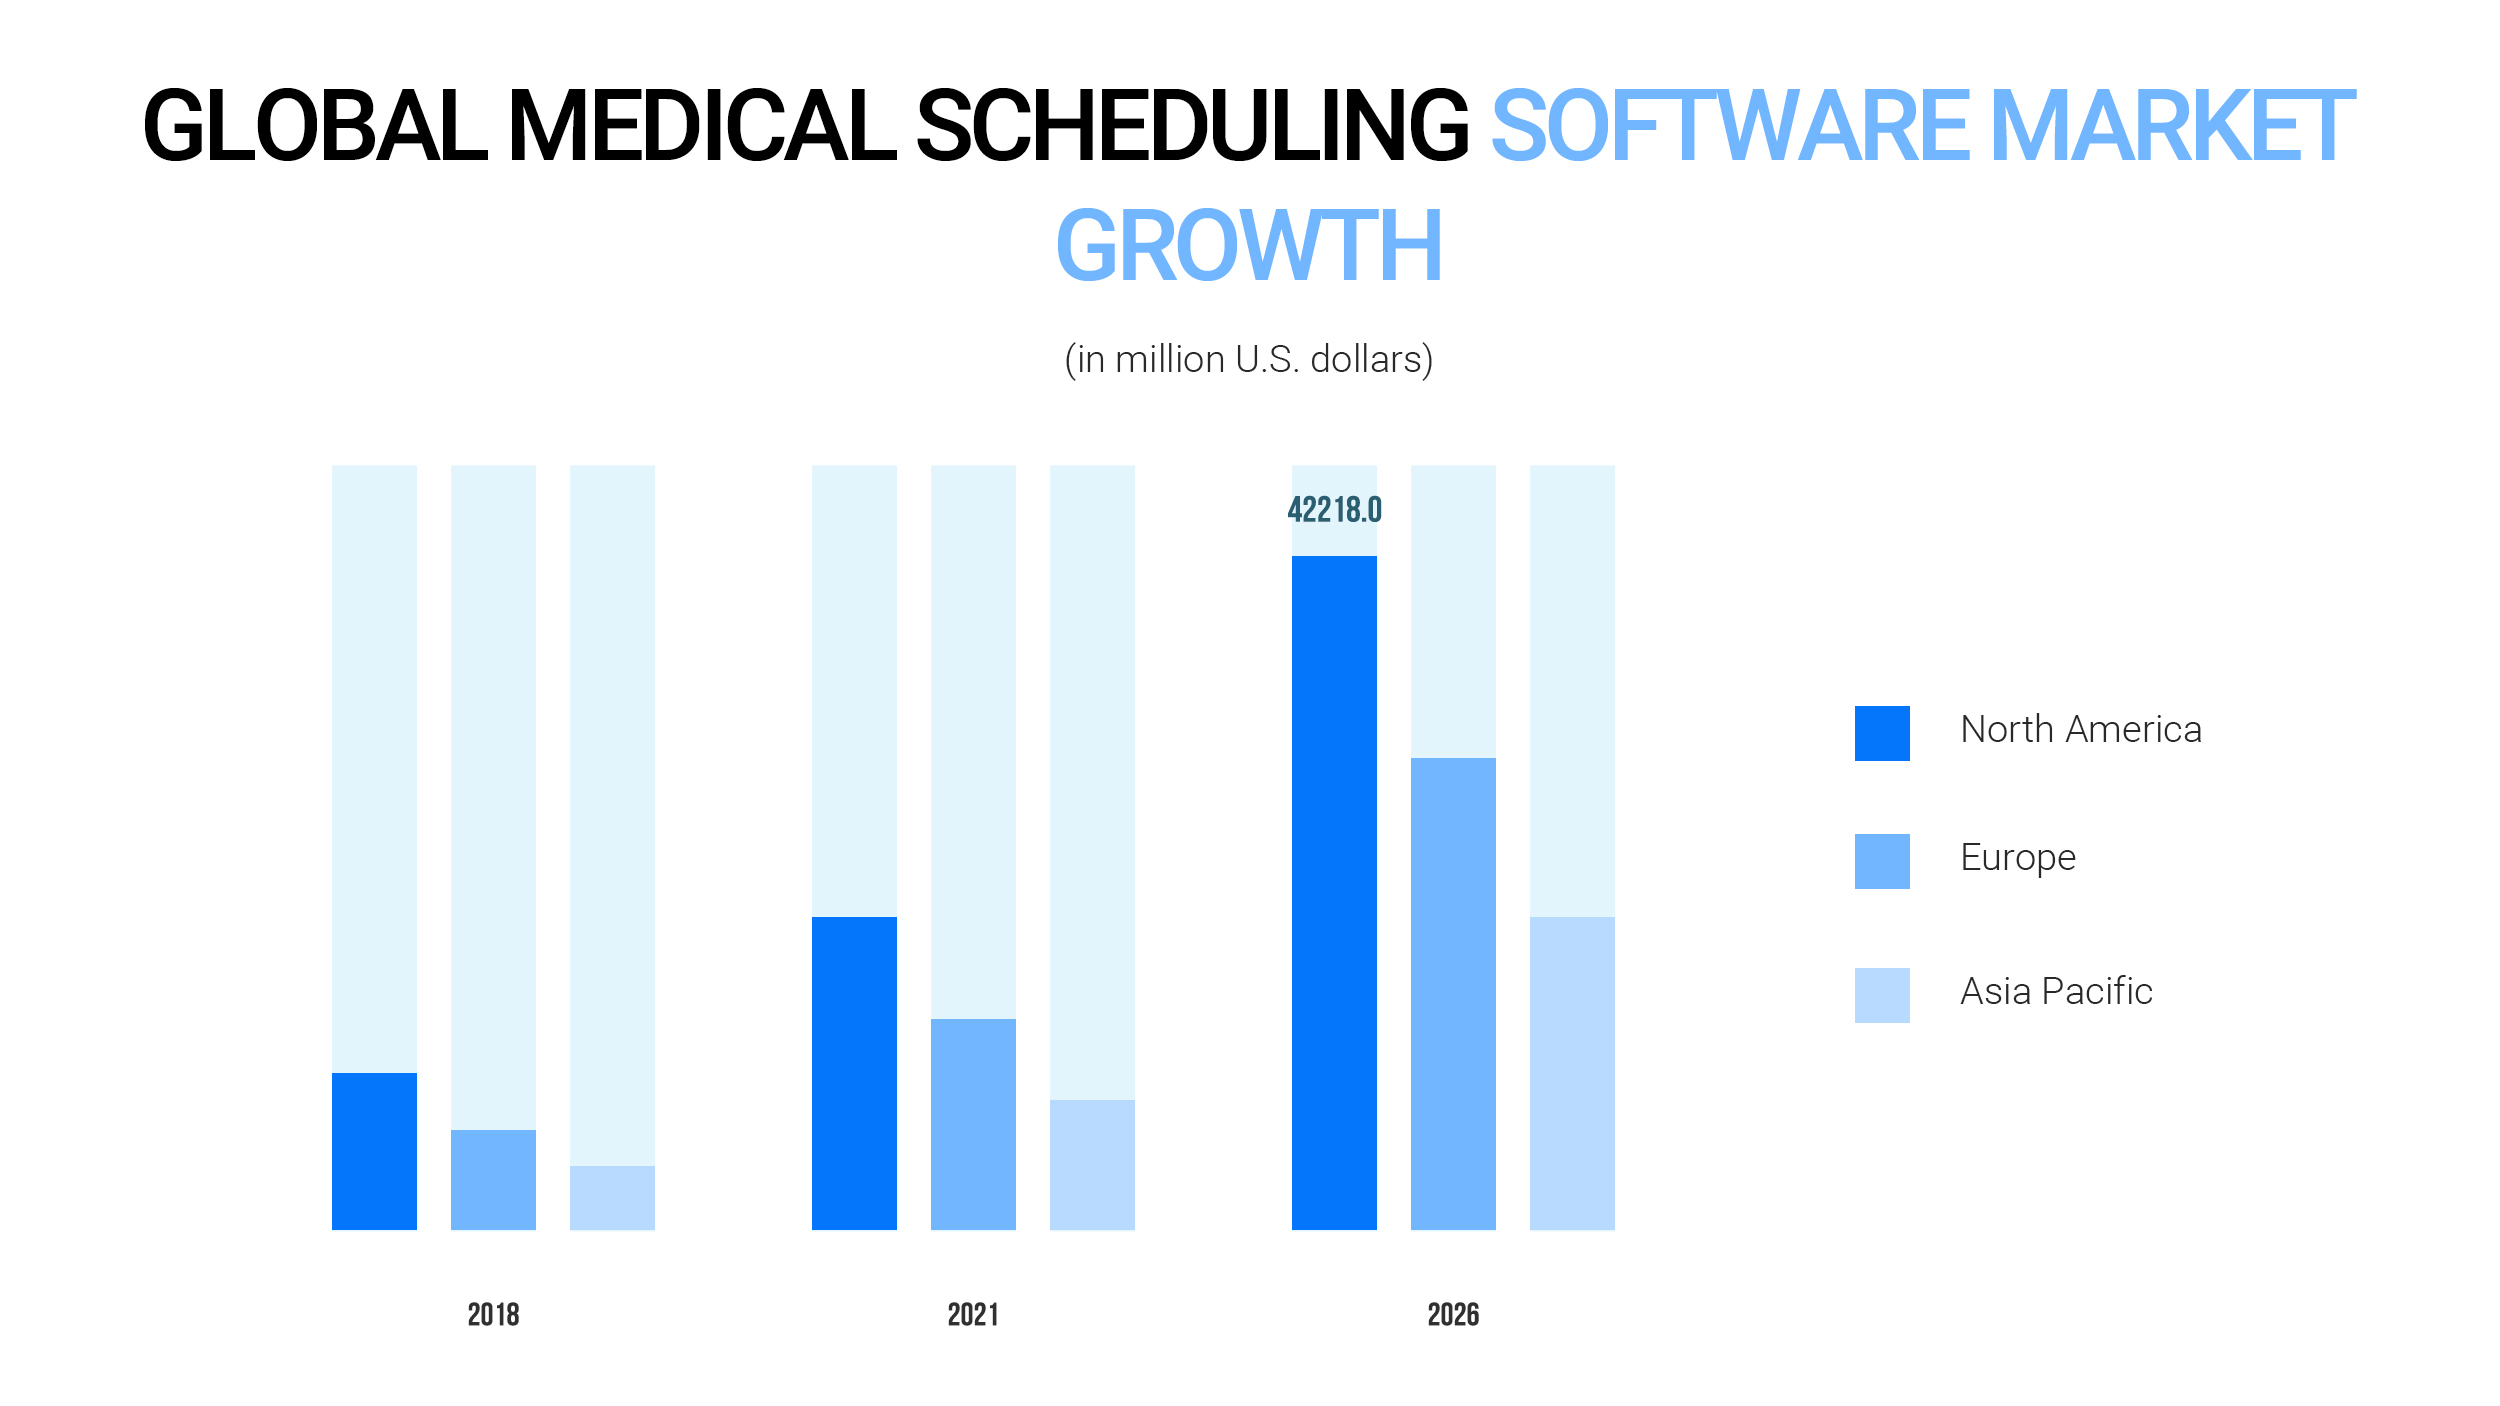 Global medical scheduling software market growth